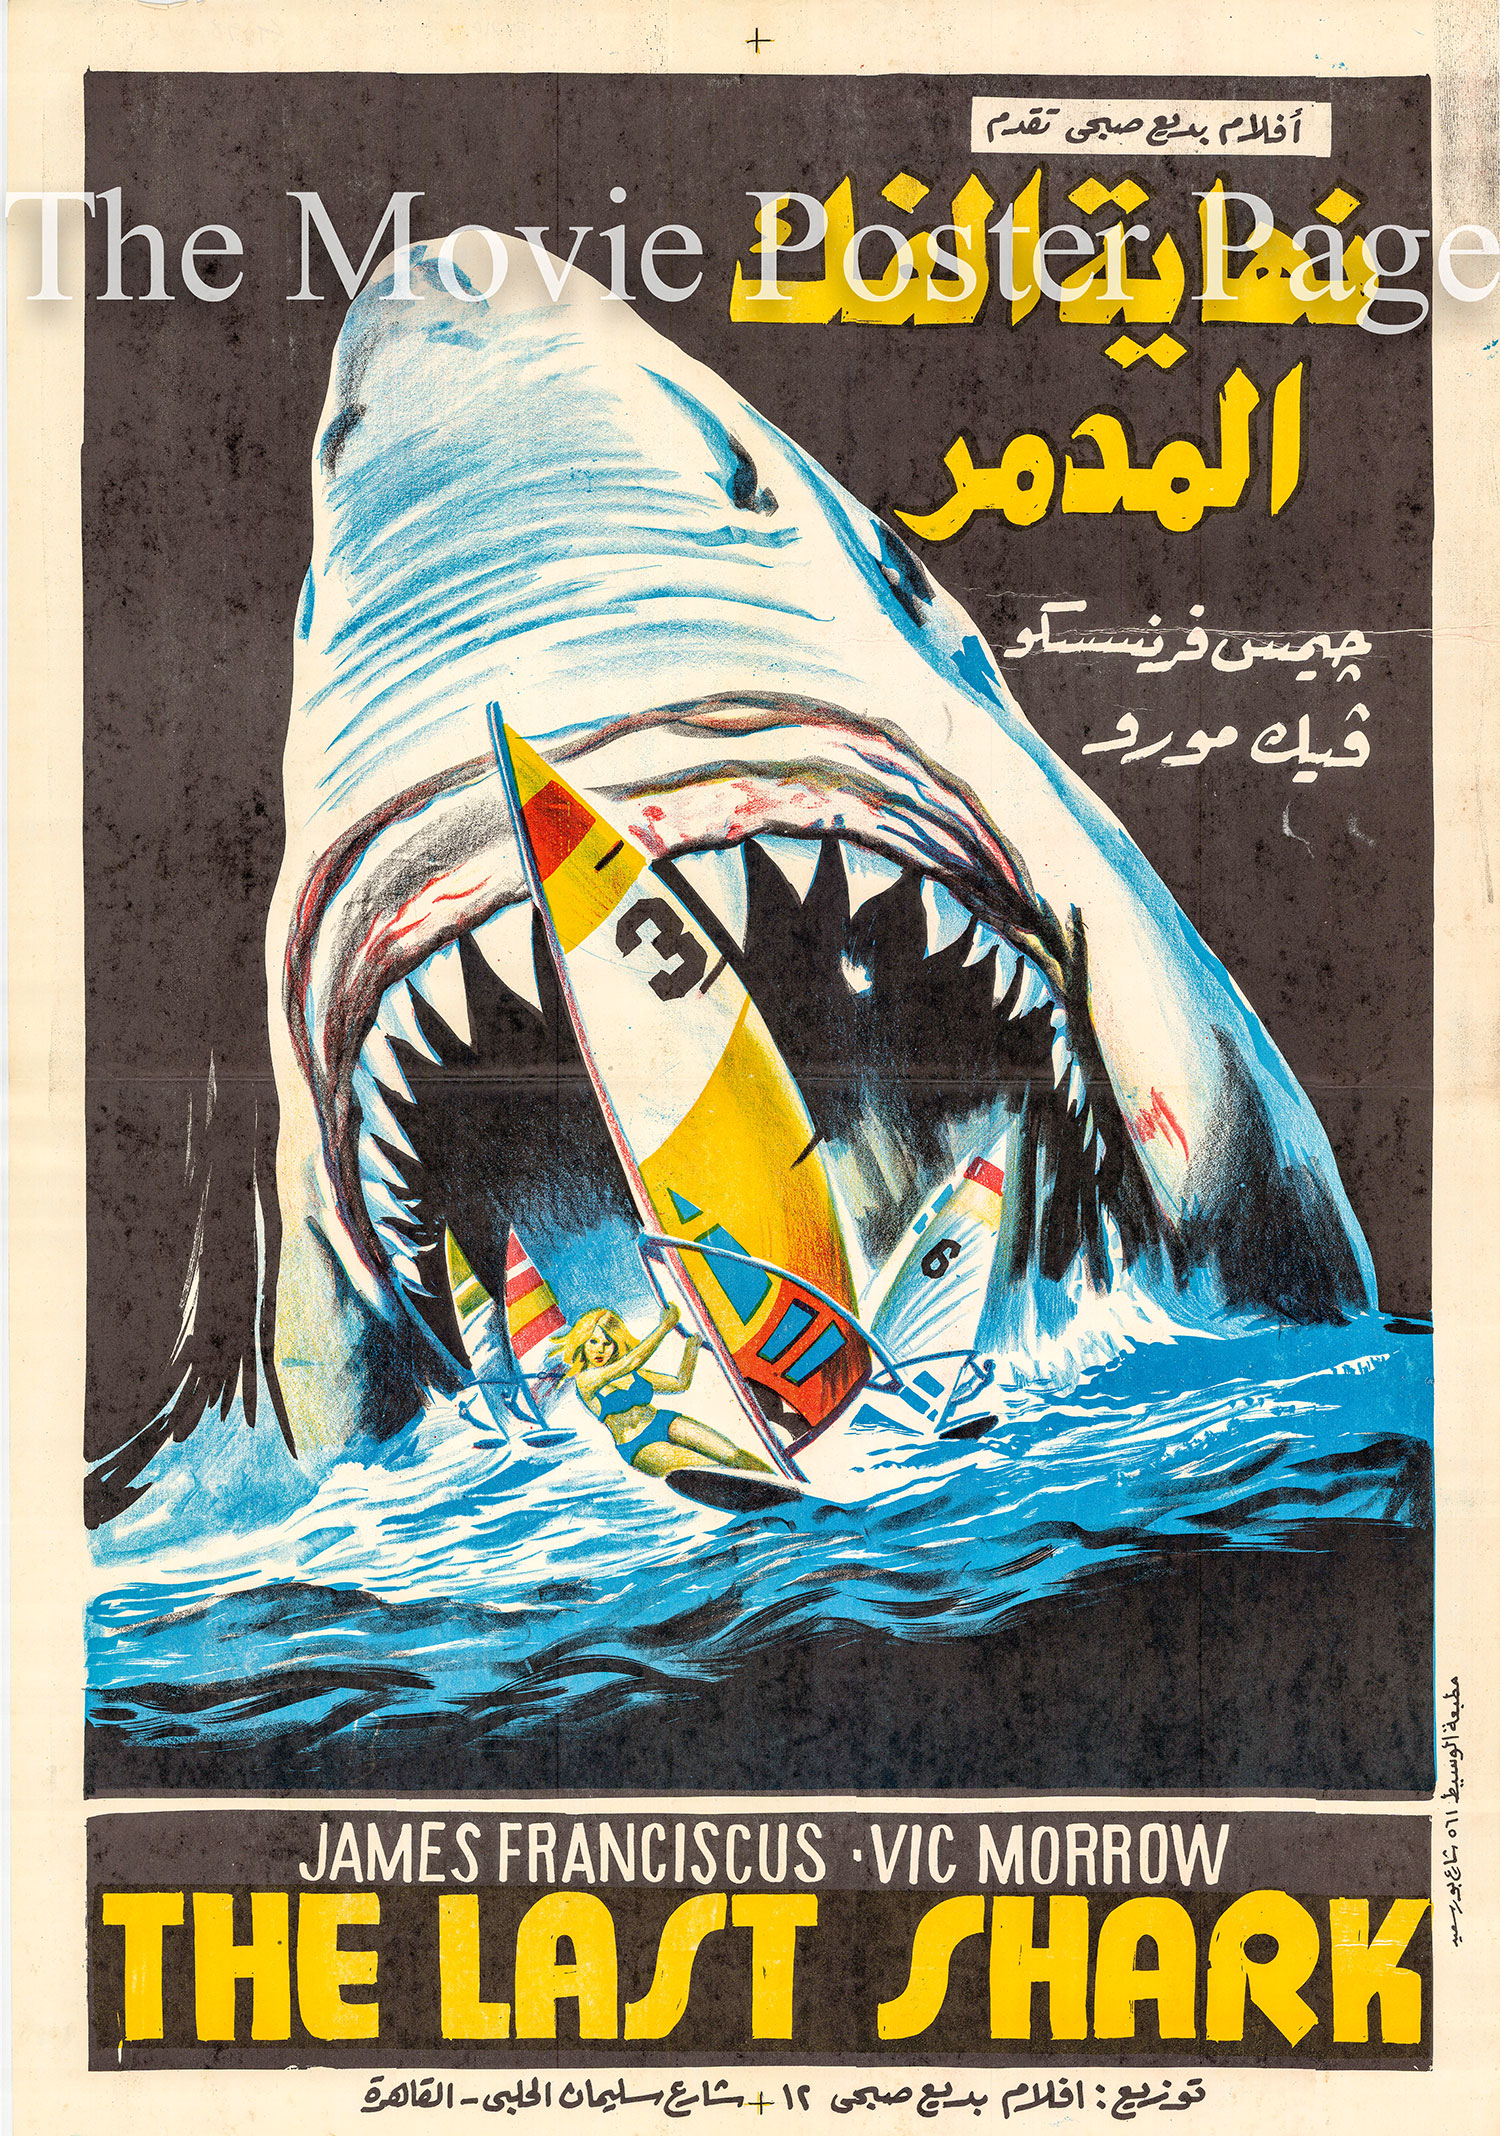 Pictured is an Egyptian promotional poster for the 1981 Enzo G. Castellari film The Last Shark starring James Franciscus.